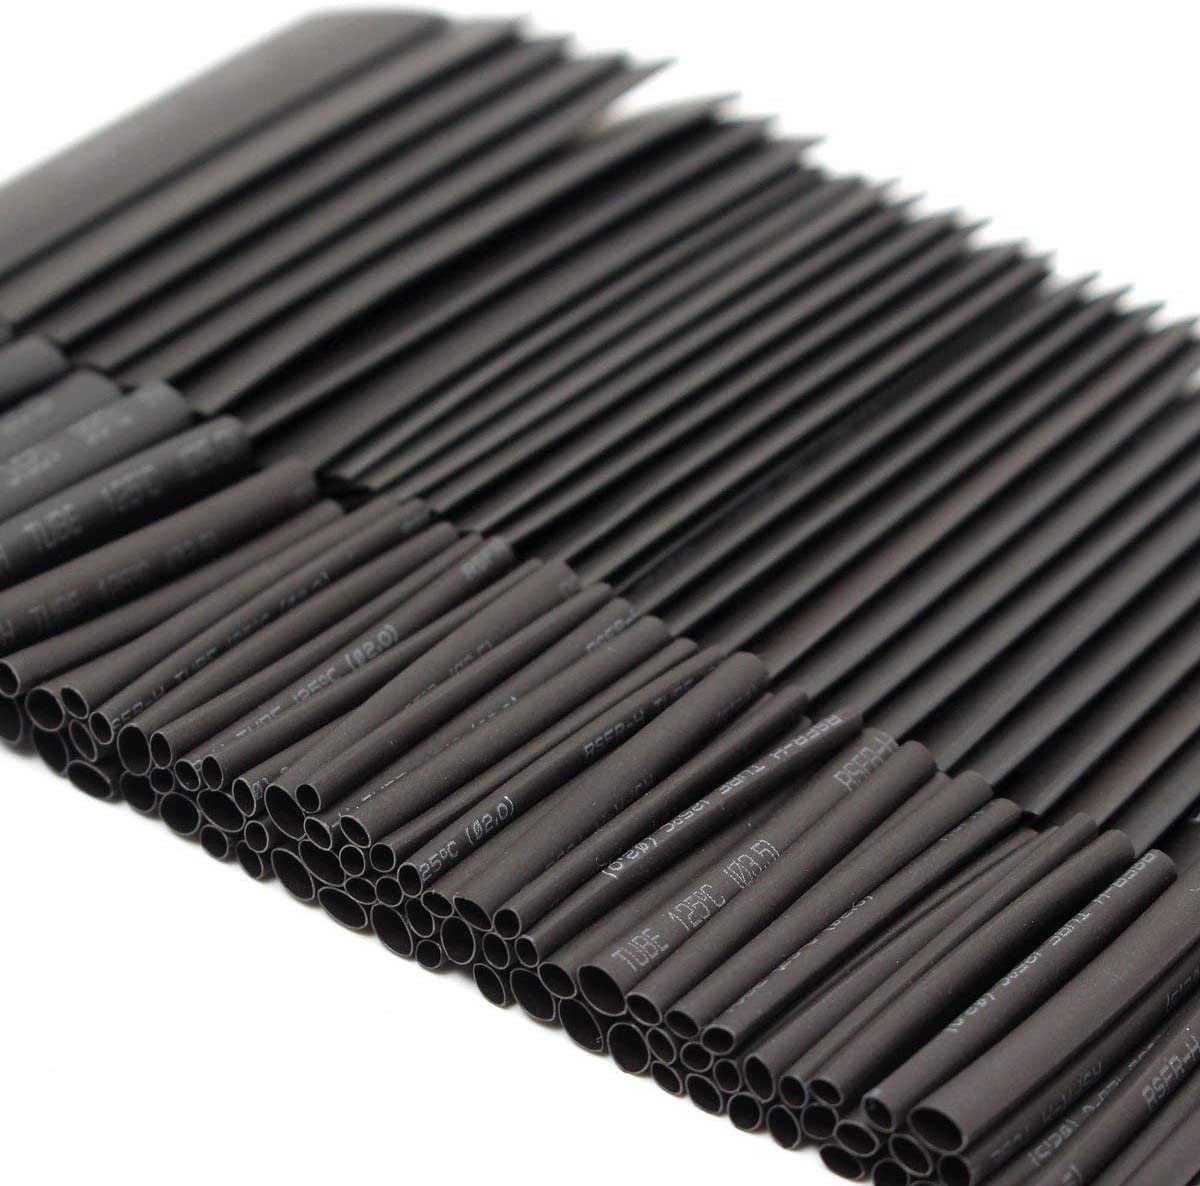 127PCS Heat Shrink Sleeving Tube Assortment Kit Electrical Connection Electrical Wire Wrap Cable Waterproof Shrinkage 2:1 Black